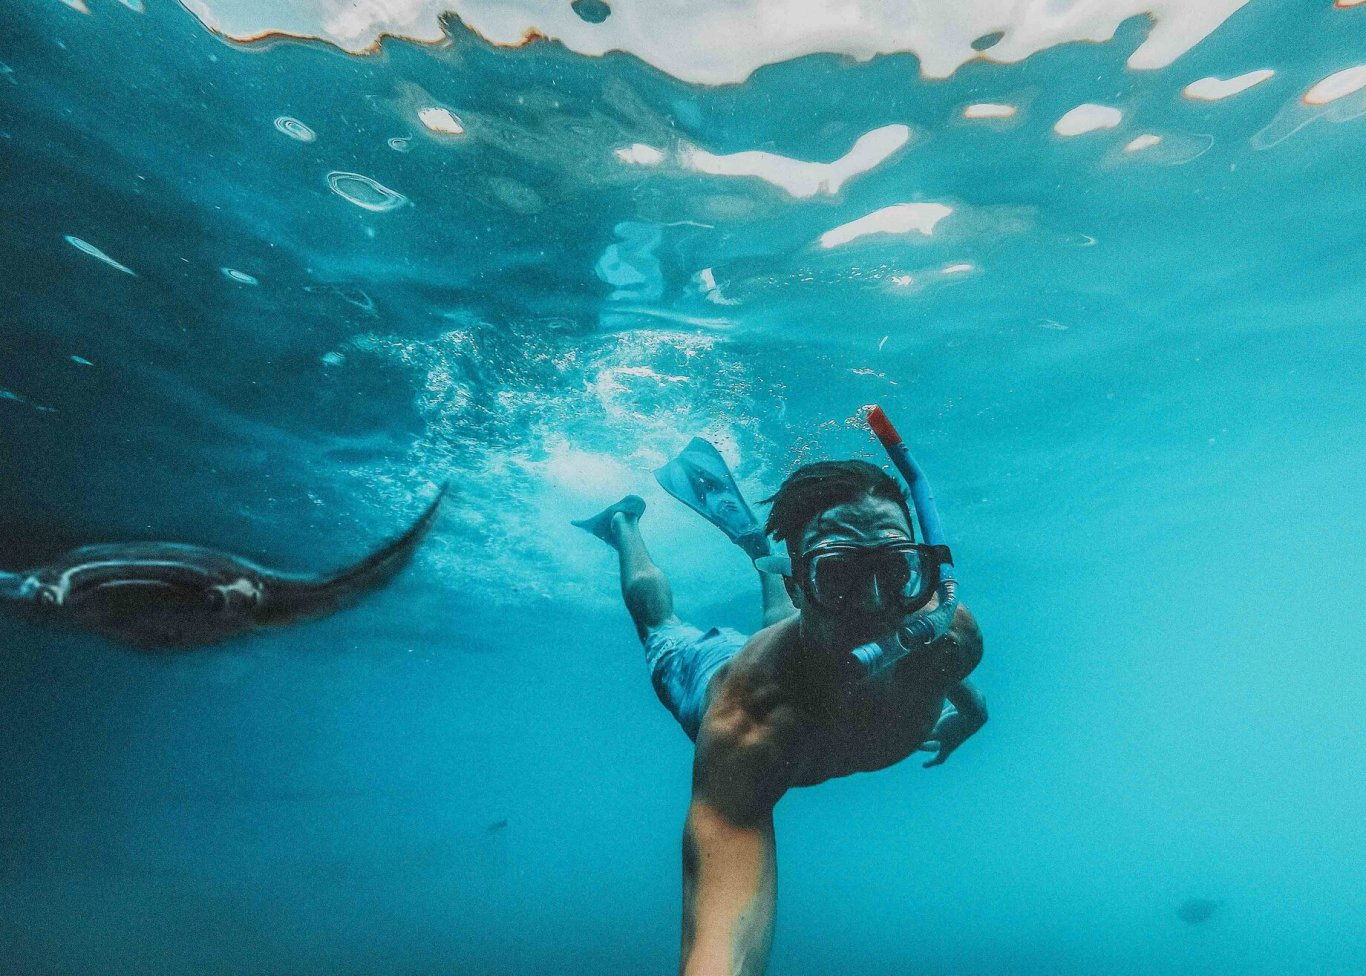 An underwater selfie of someone snorkelling with Manta rays in the bright blue ocean in the Maldives